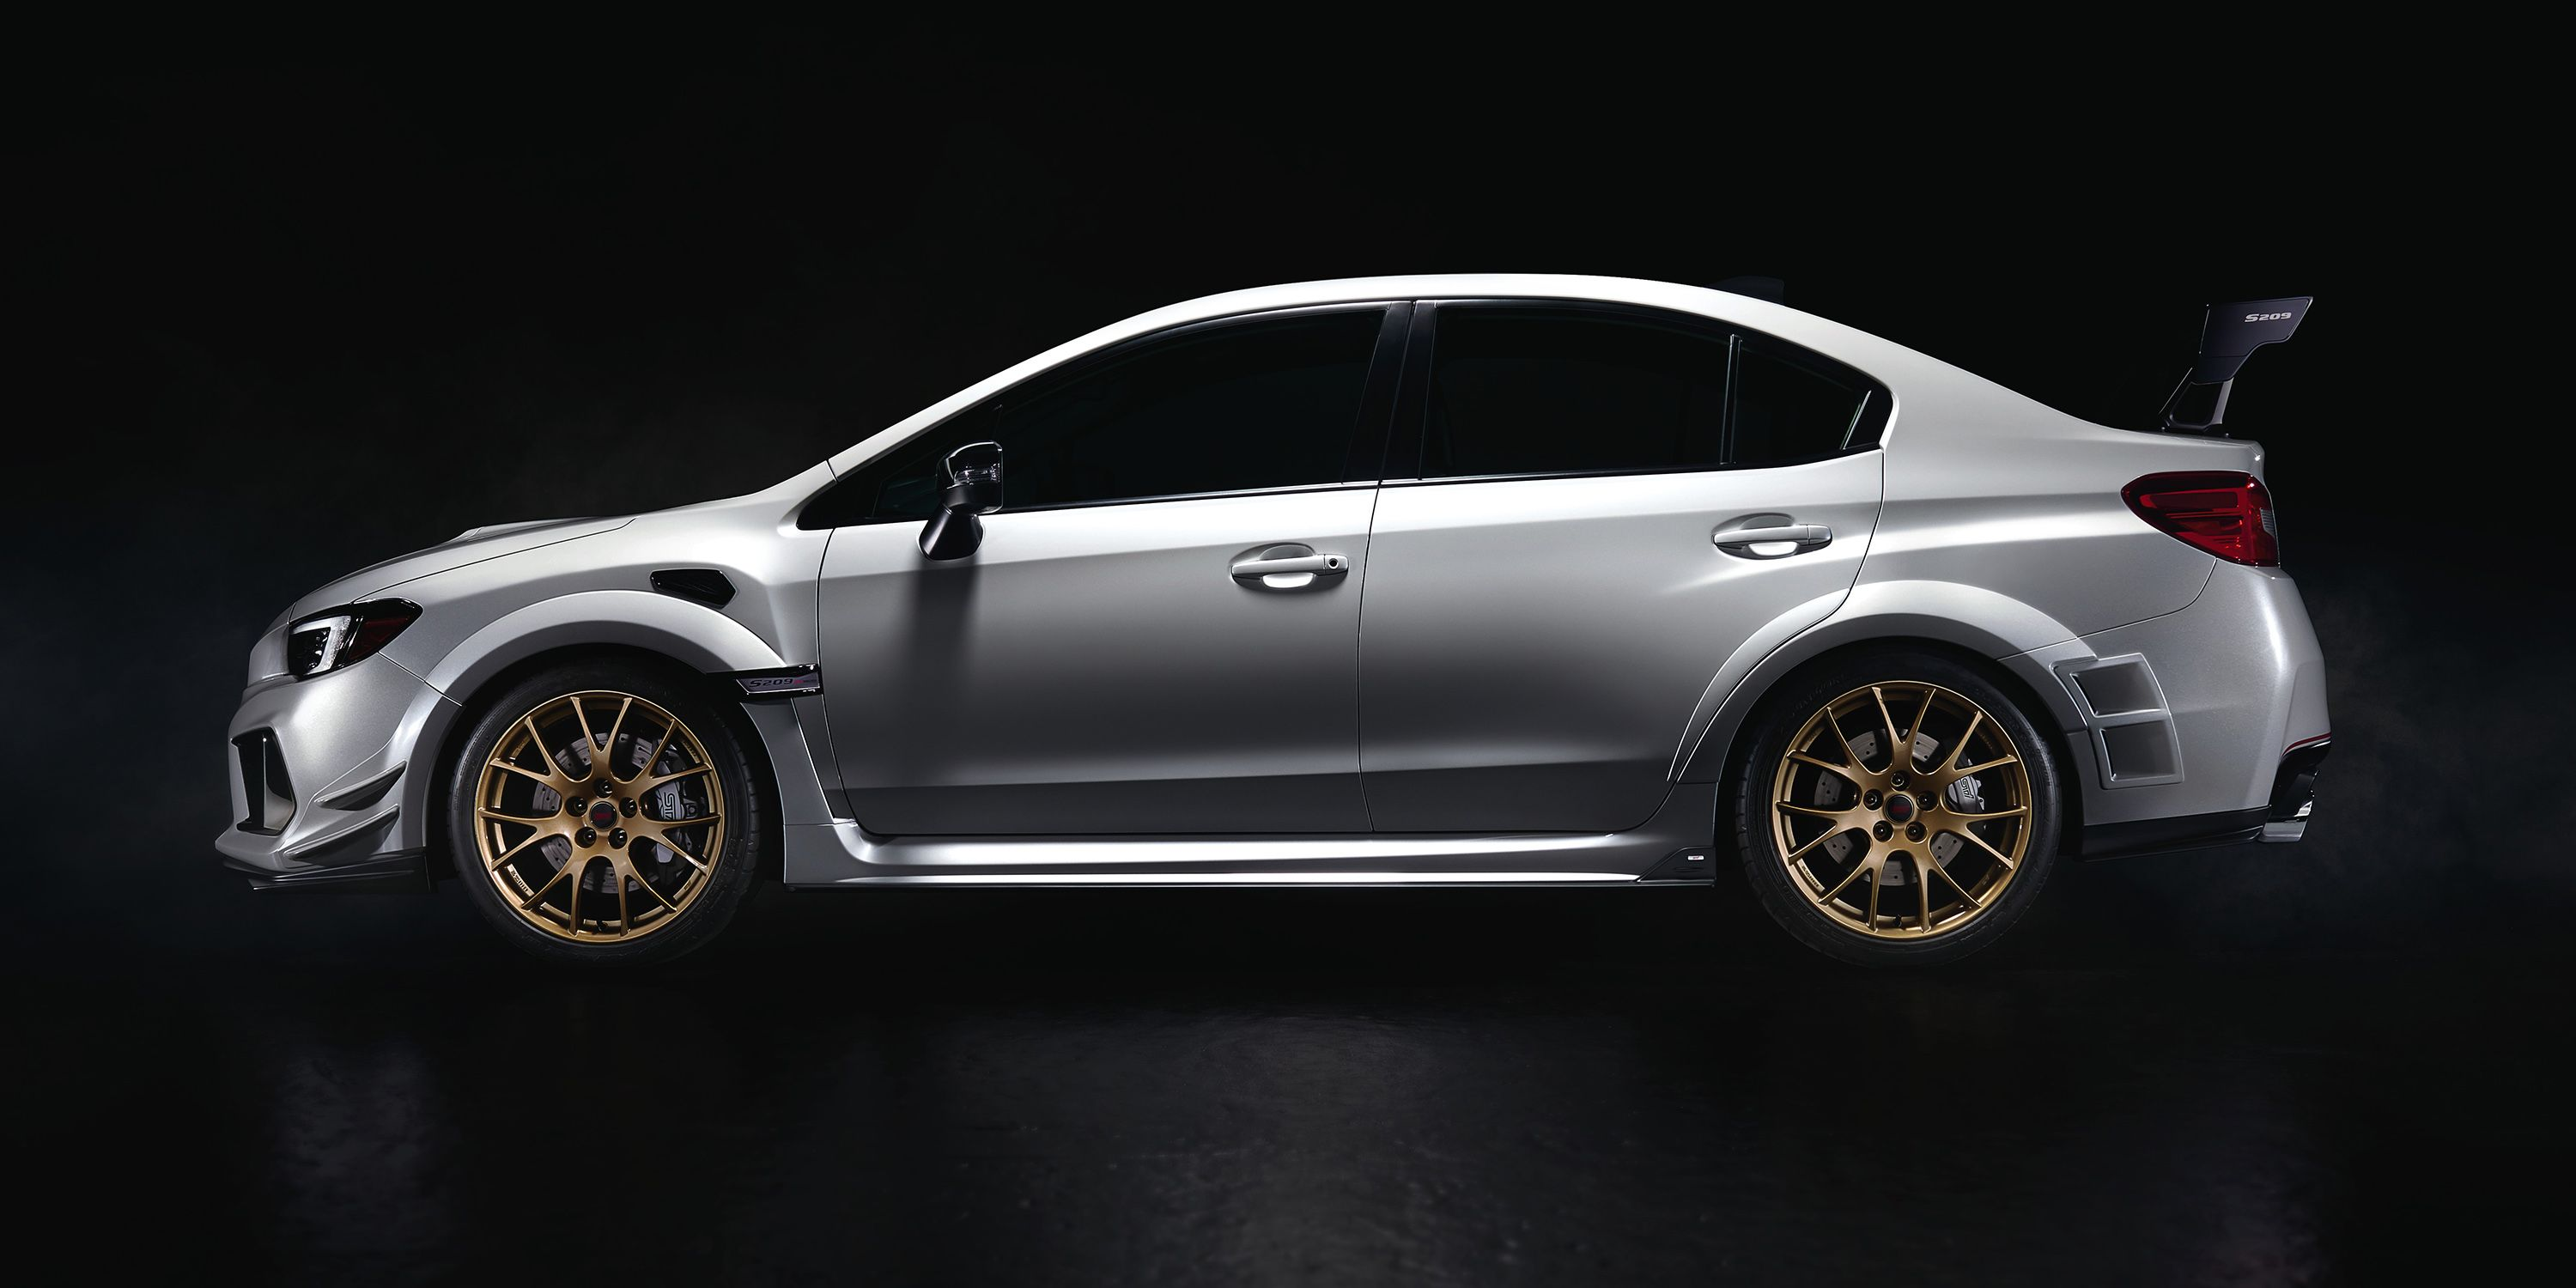 2020 Subaru Wrx Sti S209 New Wrx Sti With More Power At